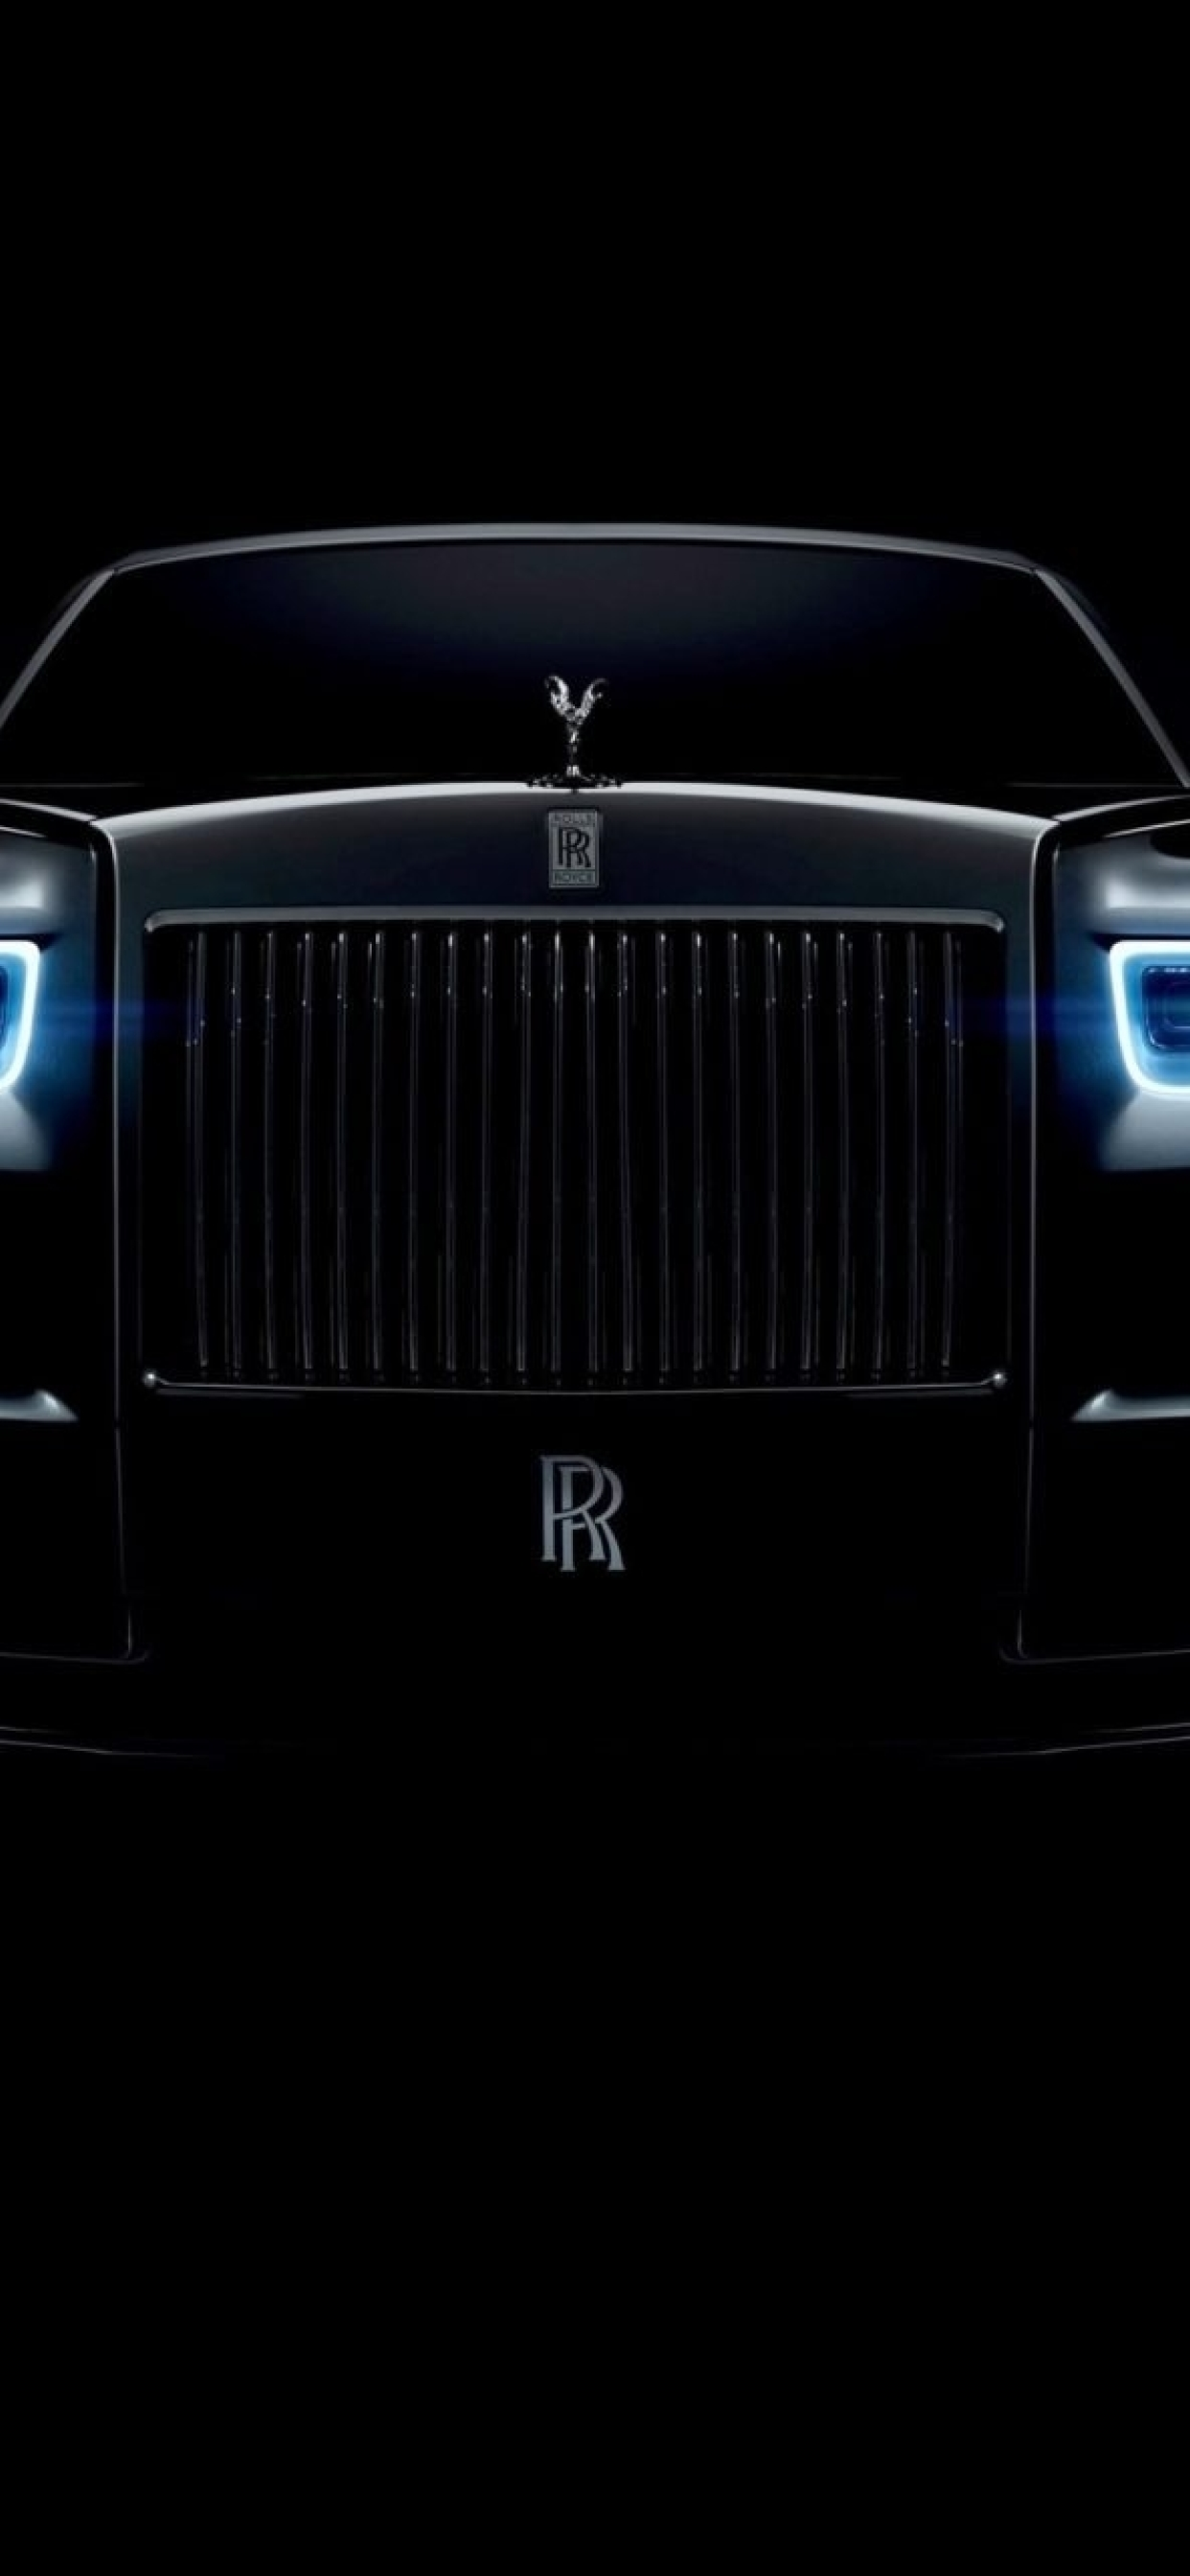 1242x2688 Rolls Royce Phantom Front Iphone Xs Max Wallpaper Hd Cars 4k Wallpapers Images Photos And Background